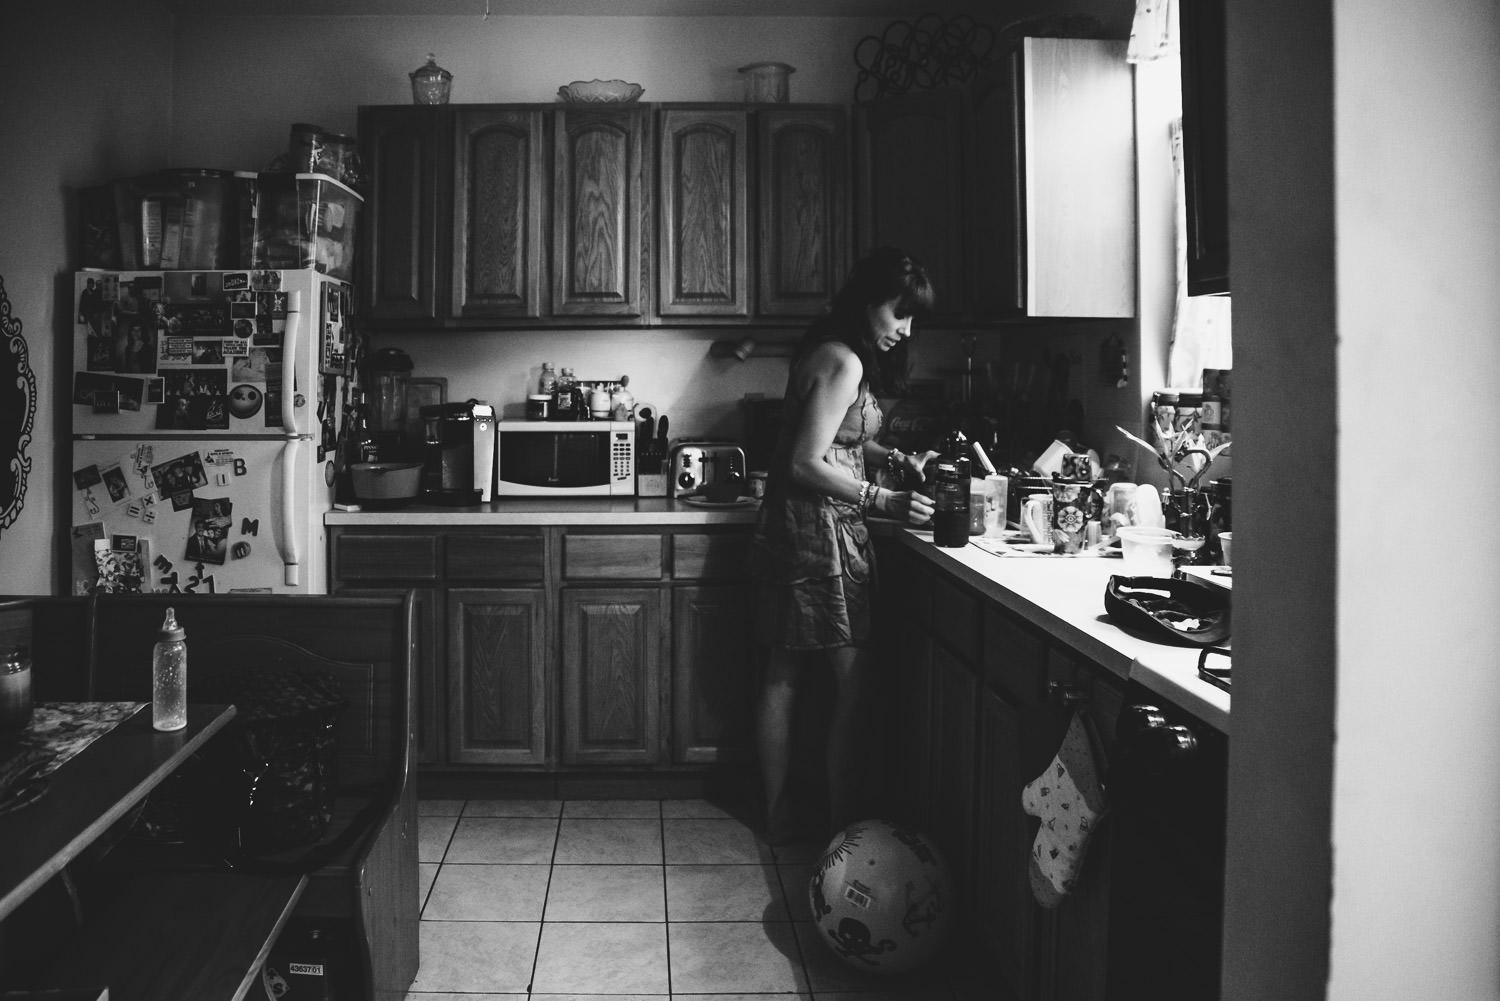 A mother prepares milk in her kitchen.